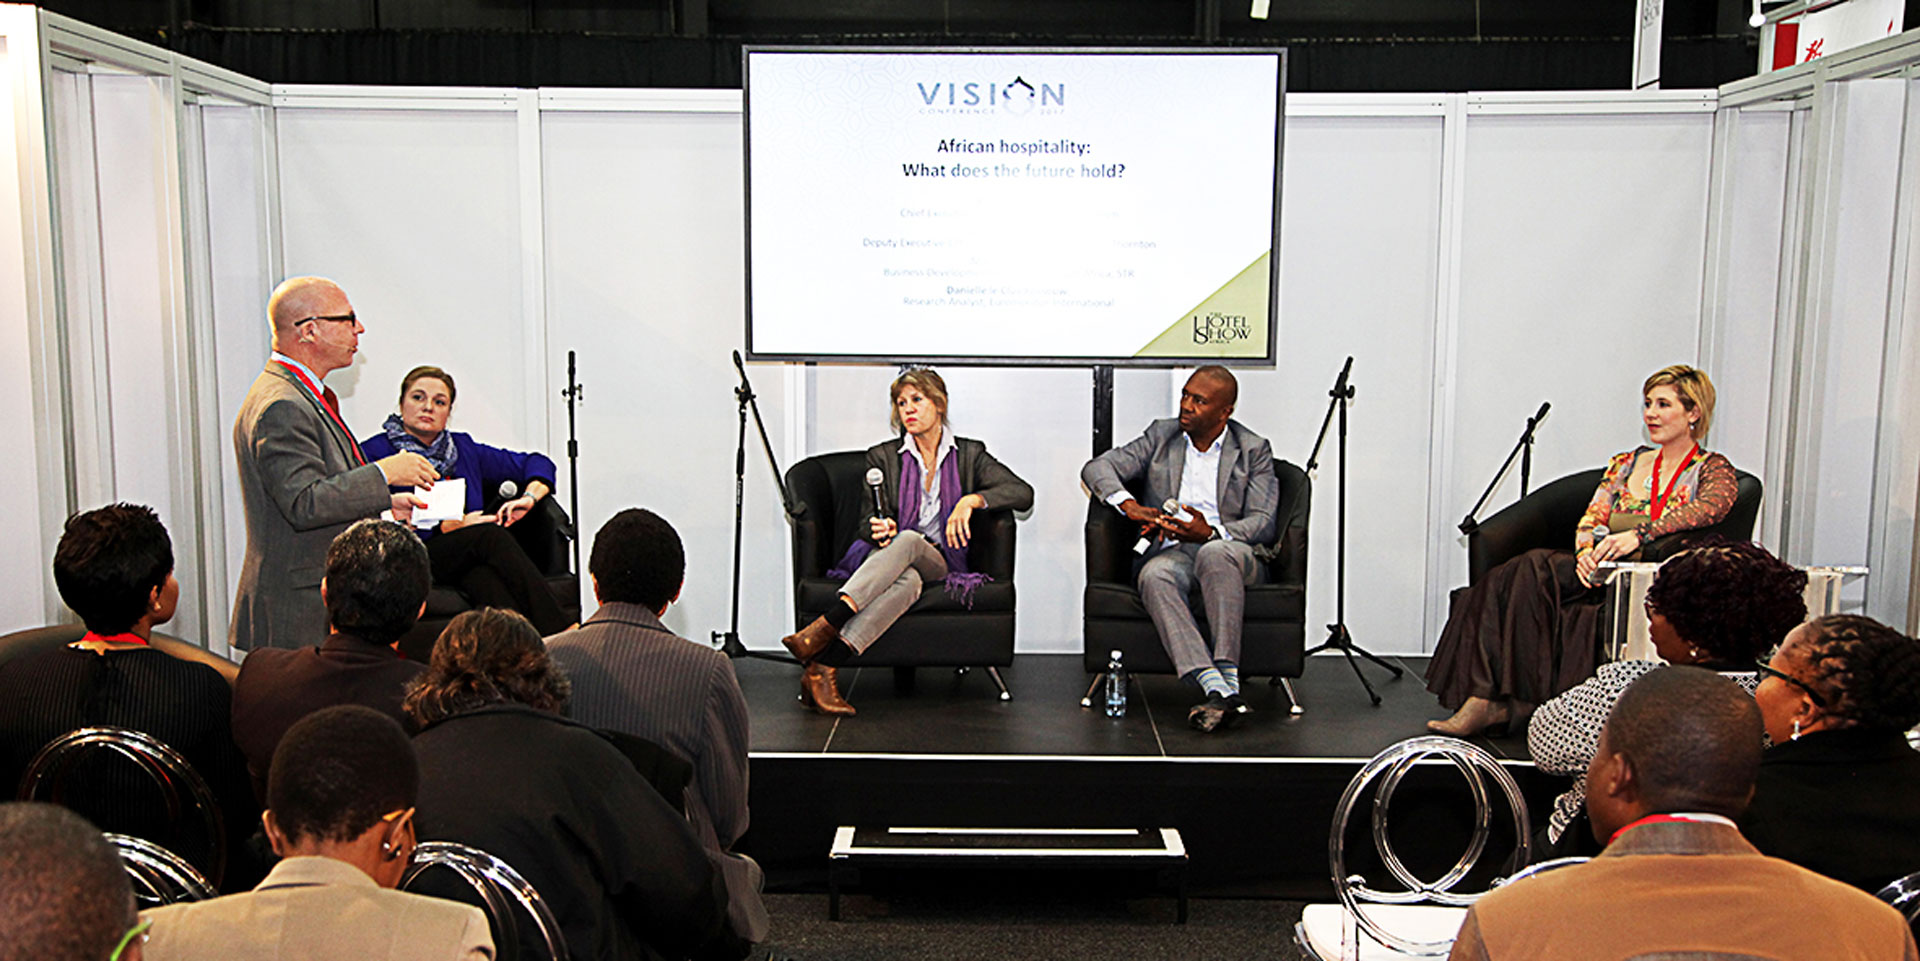 Why thousands of hospitality professionals will be in Johannesburg from June 24 to 26